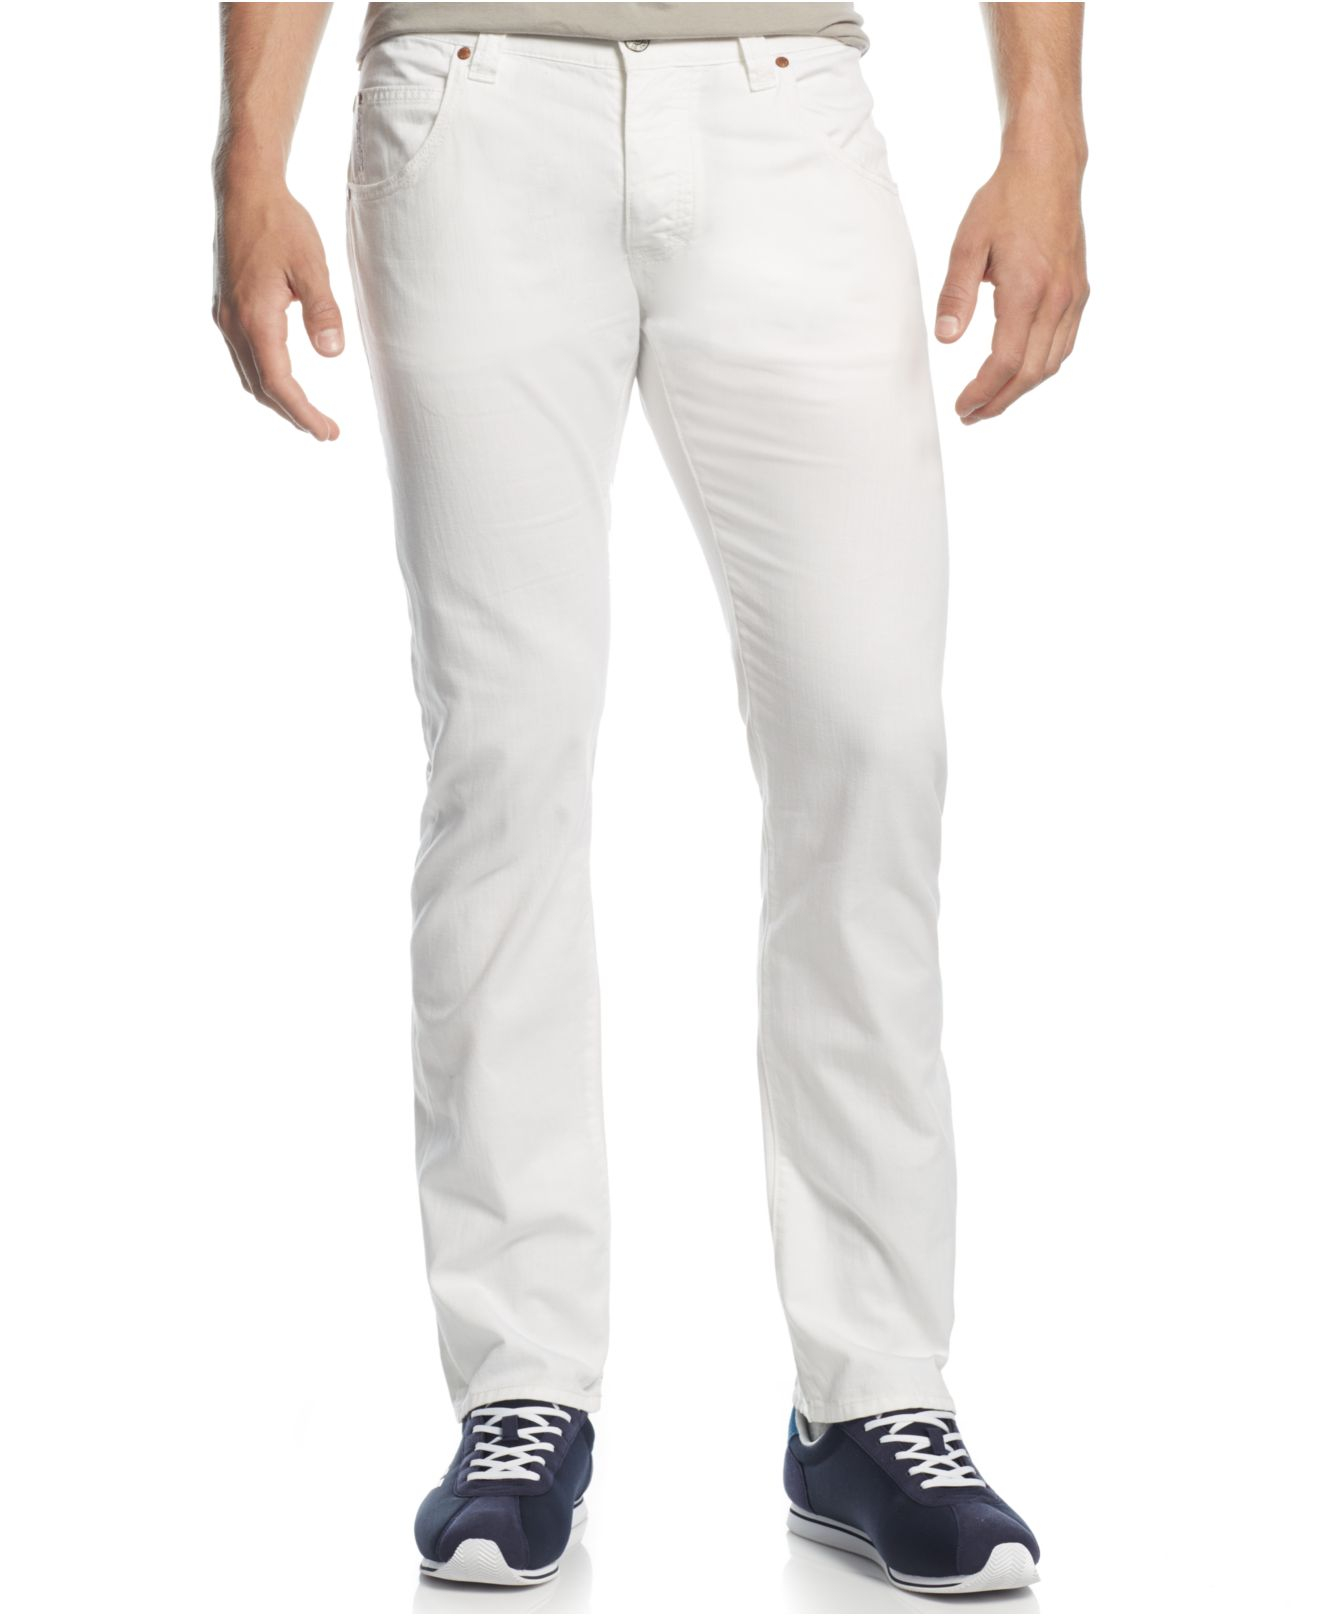 8cab165bb2 Armani Jeans White Slim Straight Jeans for men